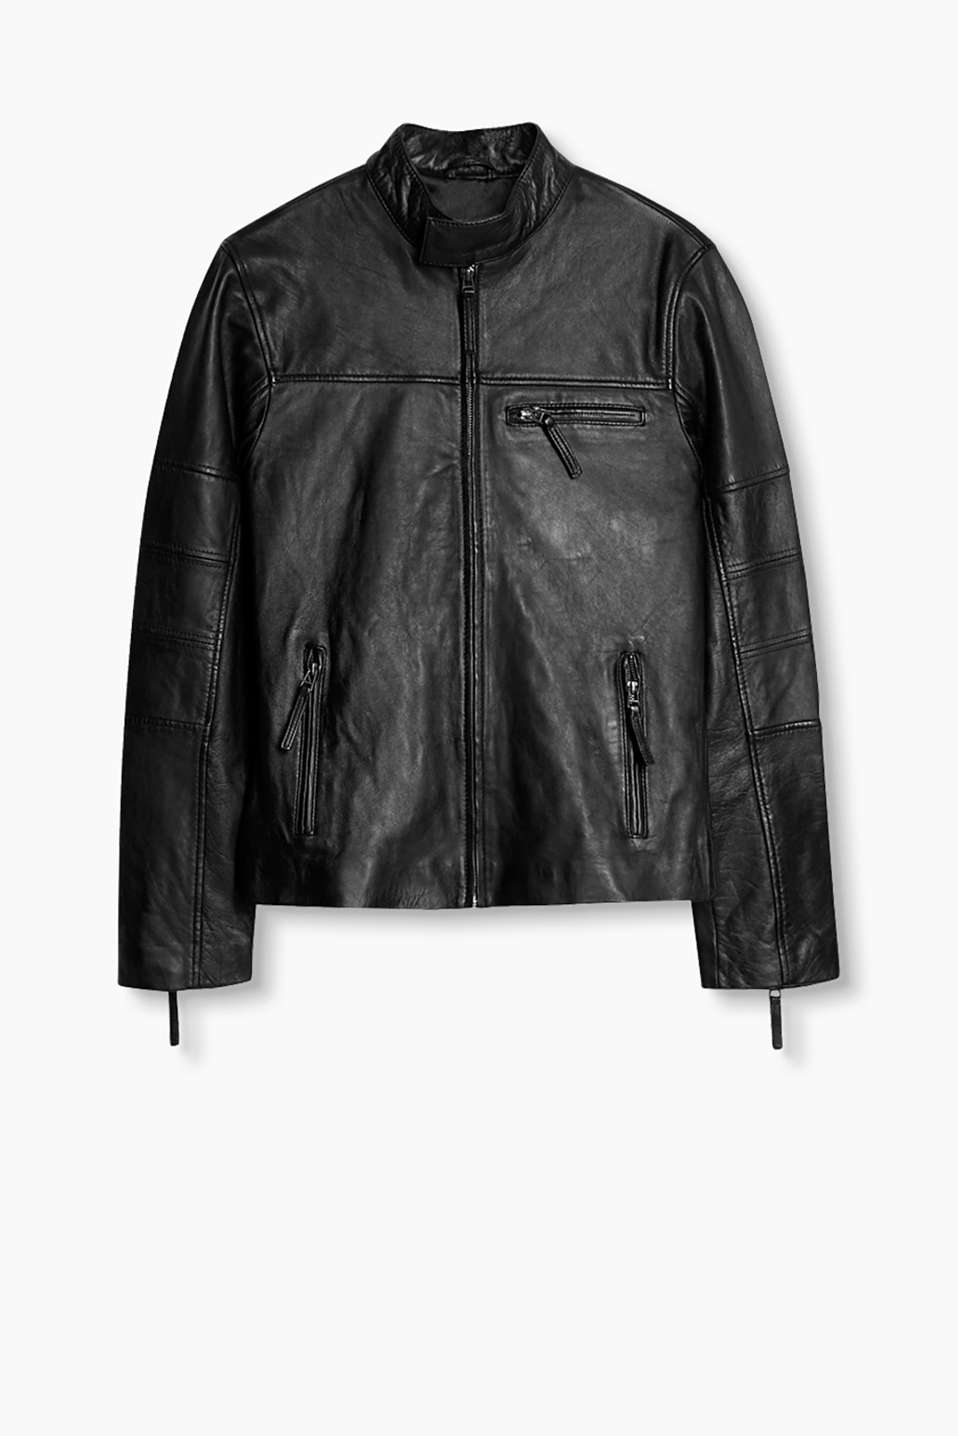 Timeless biker look: Leather jacket in a minimalist look